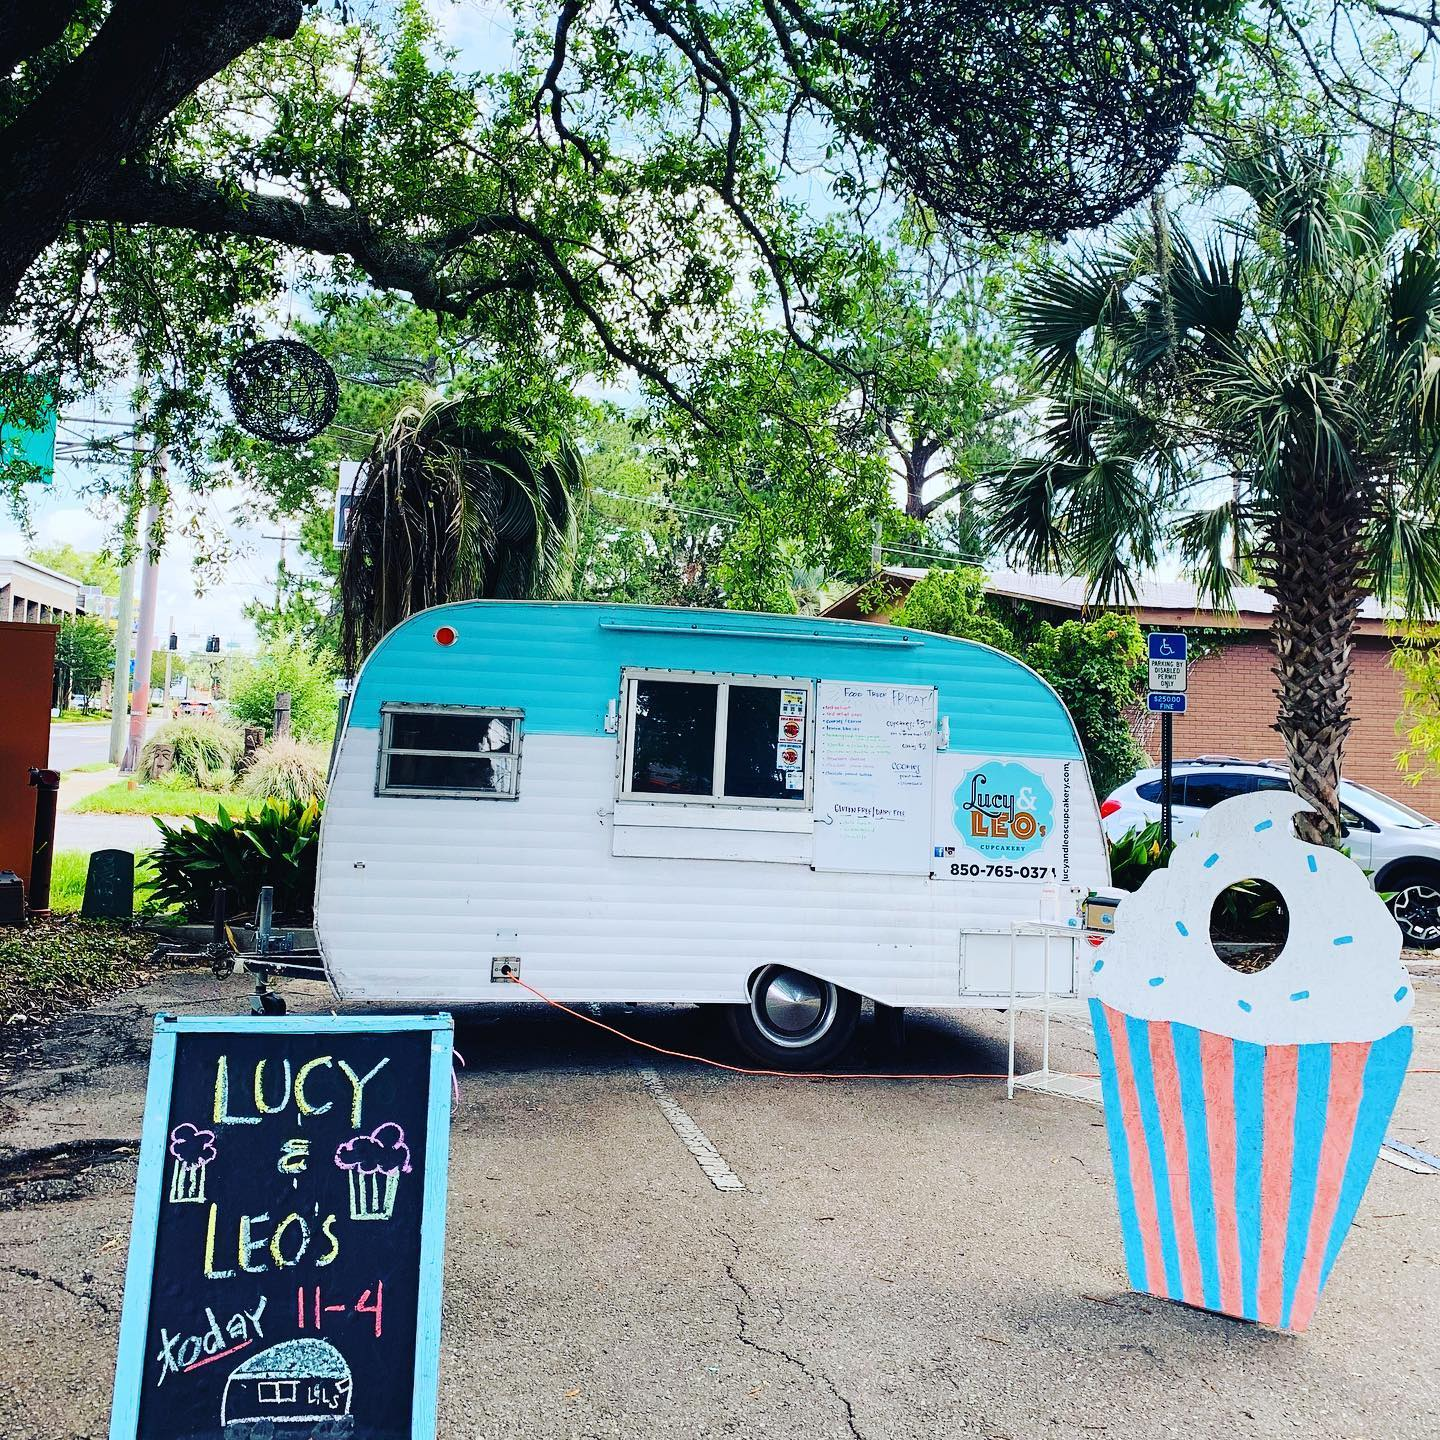 Lucy & Leo's Cupcakery food truck